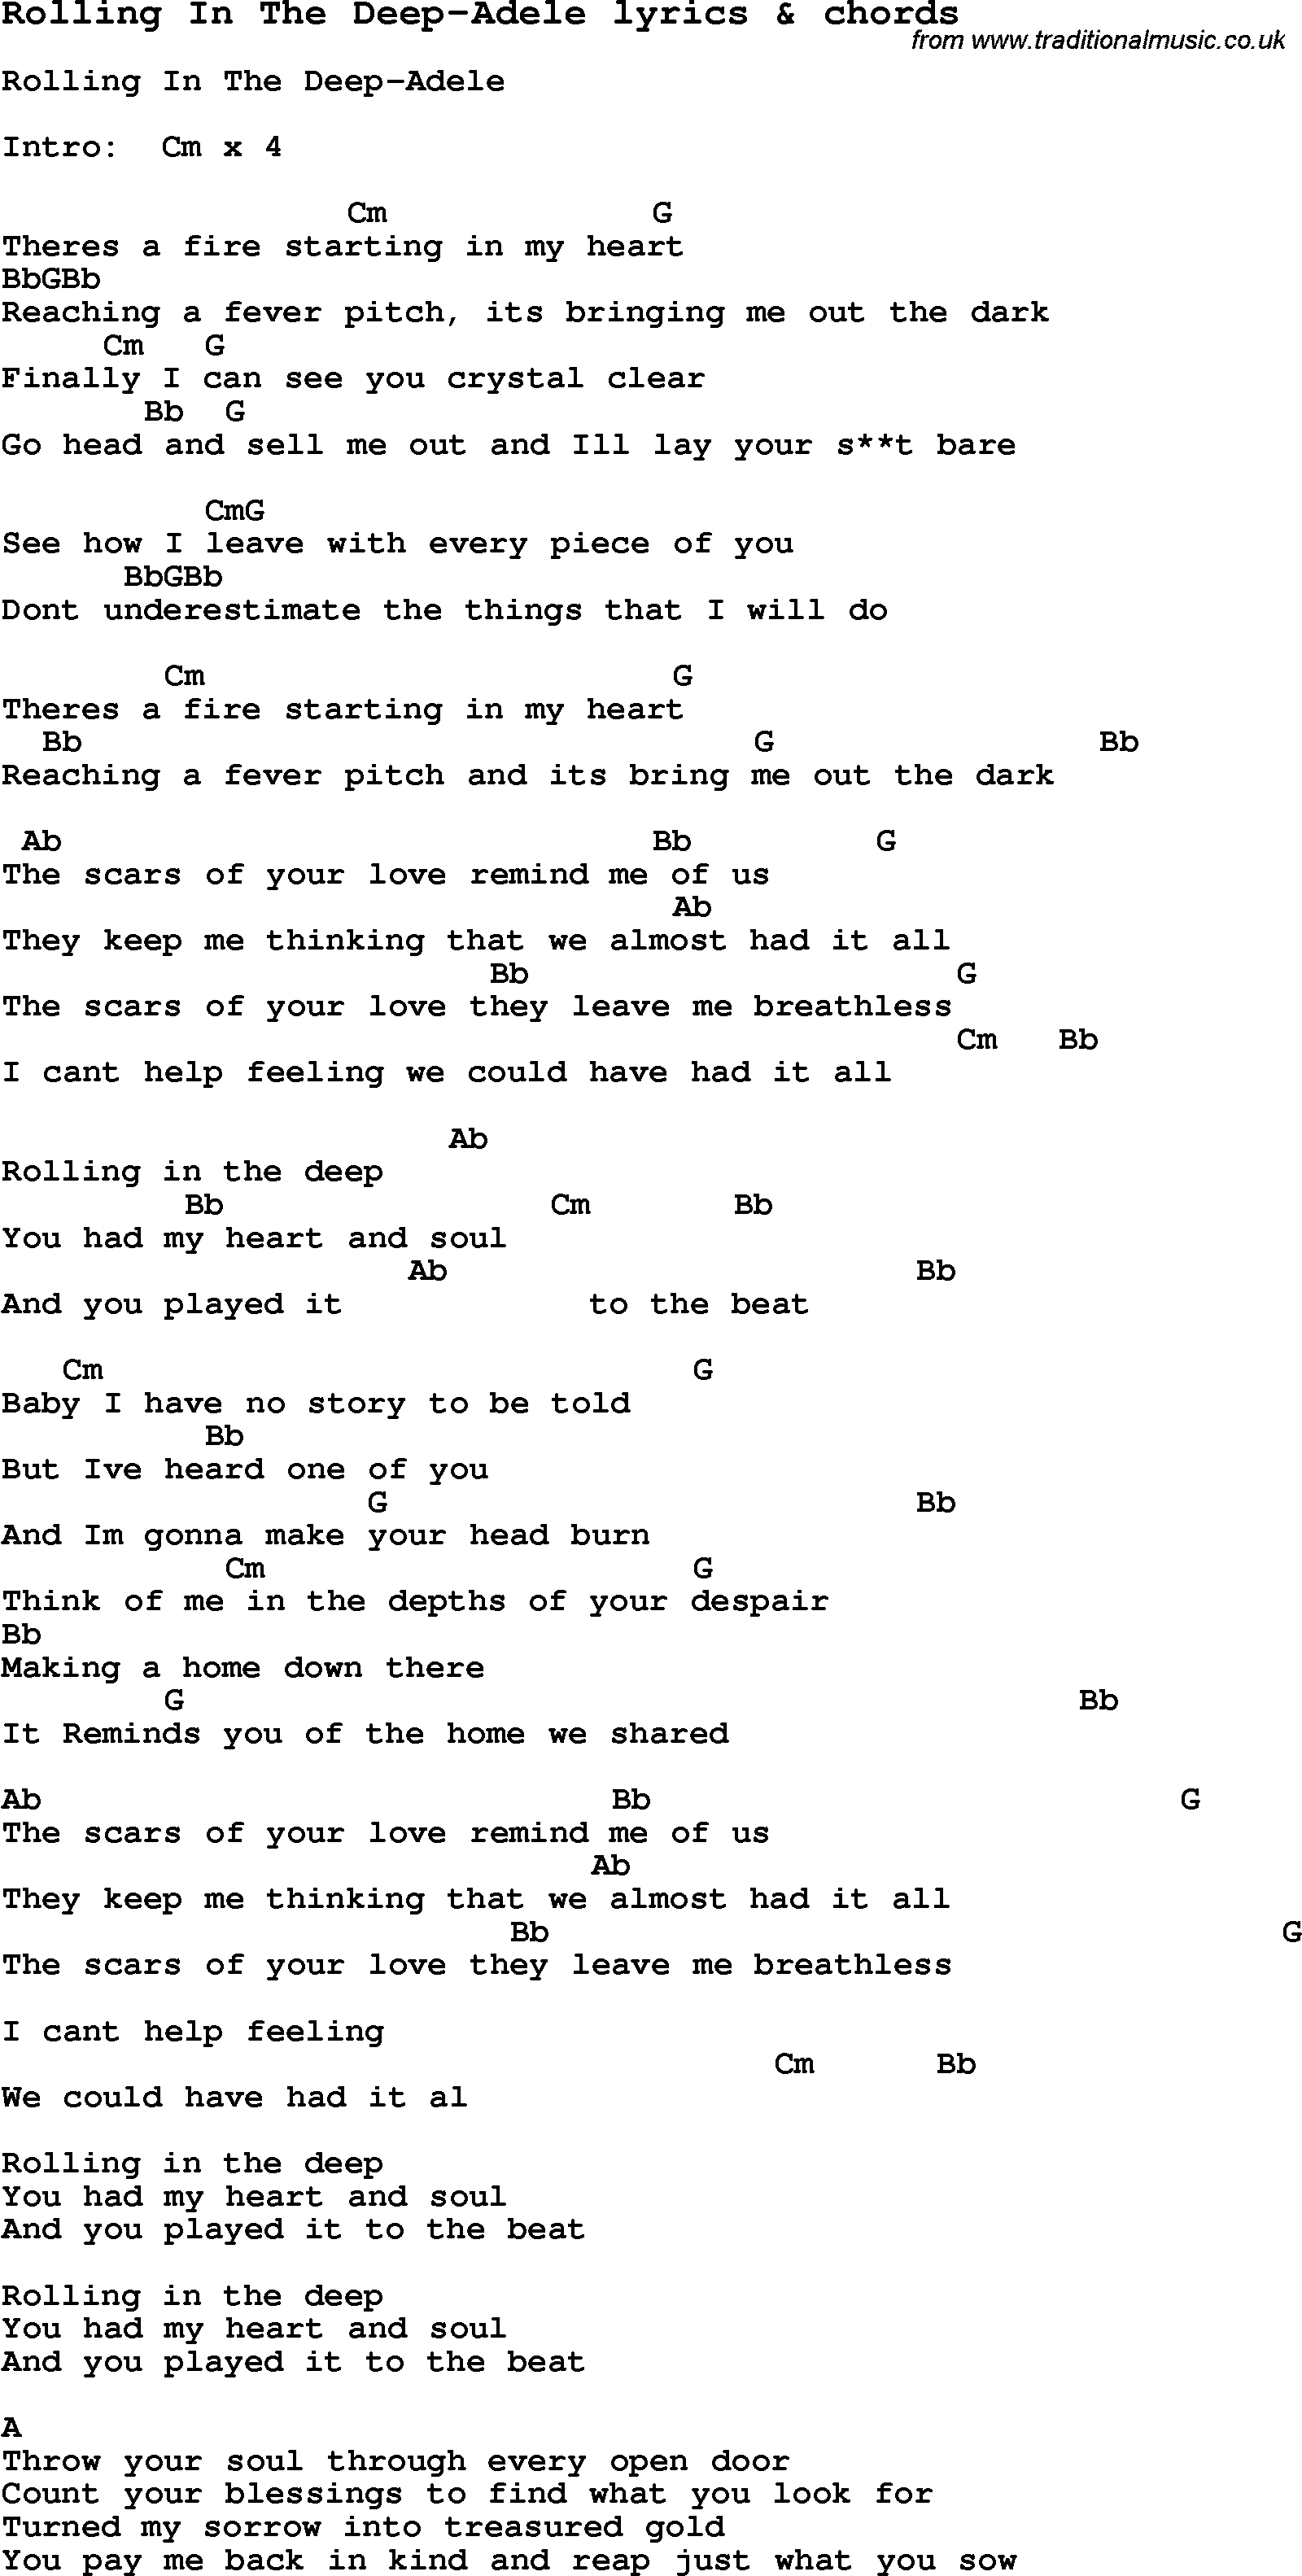 Love Song Lyrics for:Rolling In The Deep-Adele with chords. Rolling In The Deep Chords